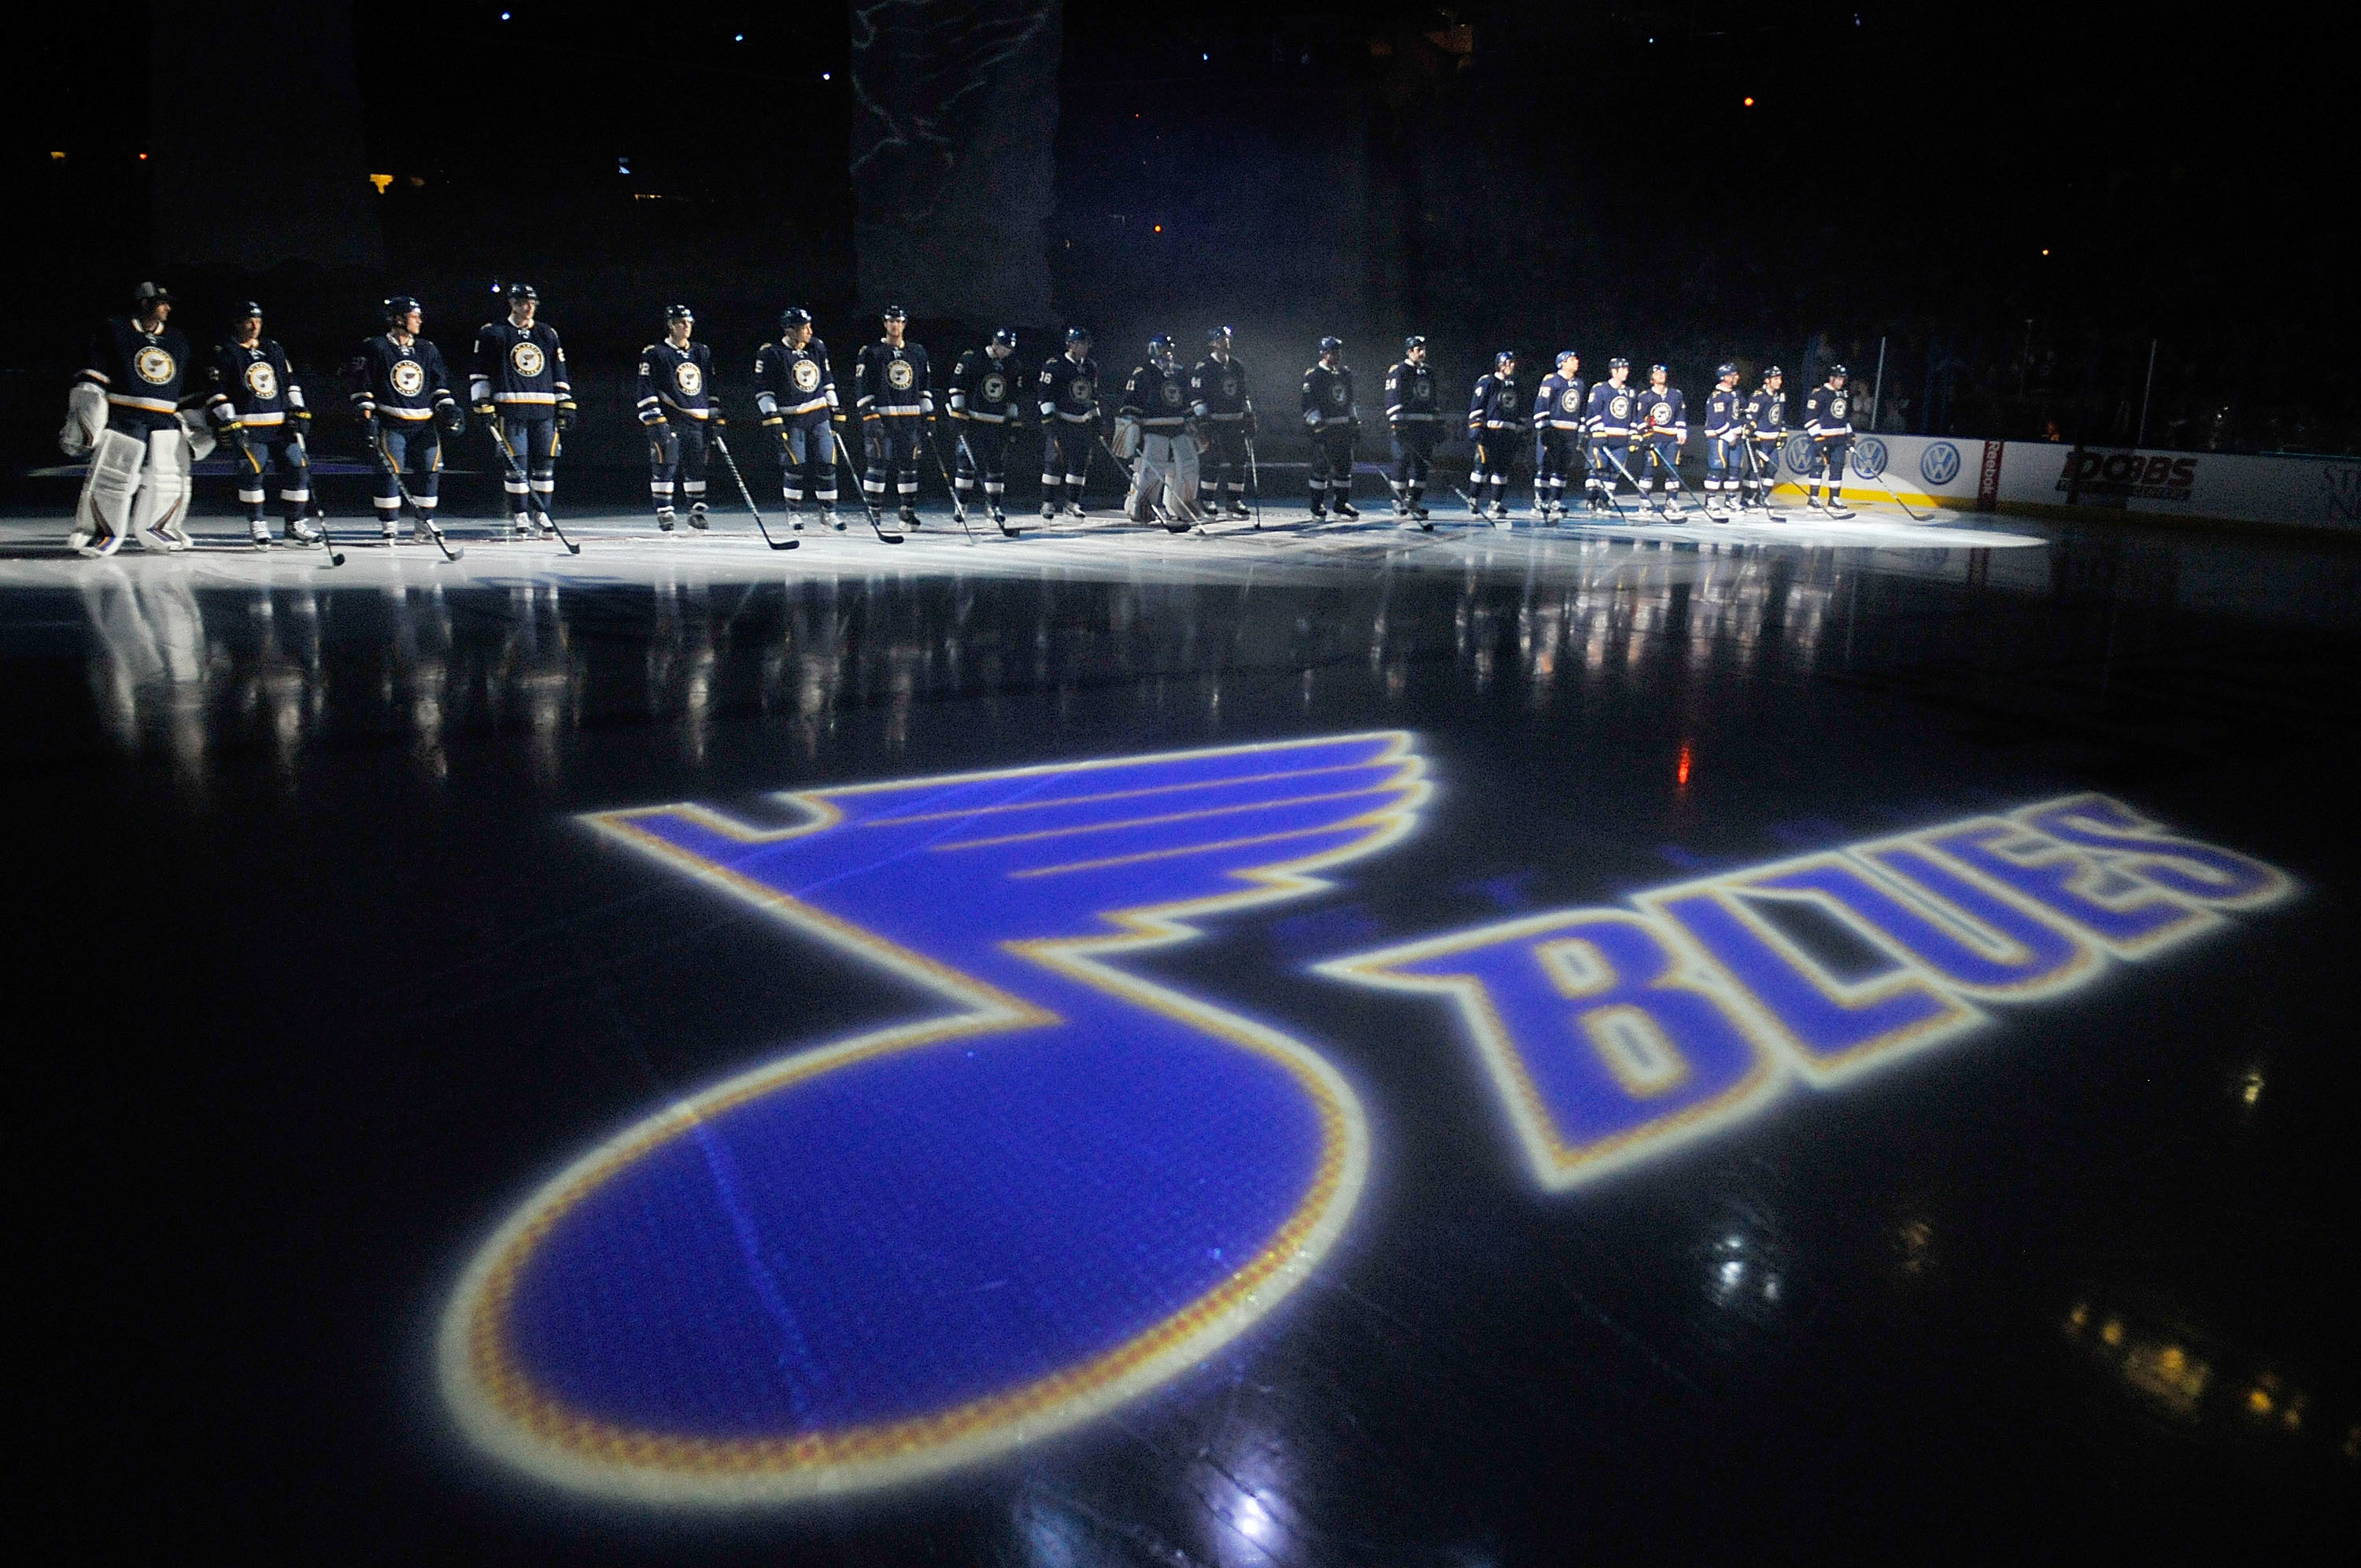 ST. LOUIS, MO - OCTOBER 8: The St. Louis Blues are introduced before a game against the Nashville Predators at Scottrade Center on October 8, 2011 in St. Louis, Missouri.  (Photo by Jeff Curry/Getty Images)